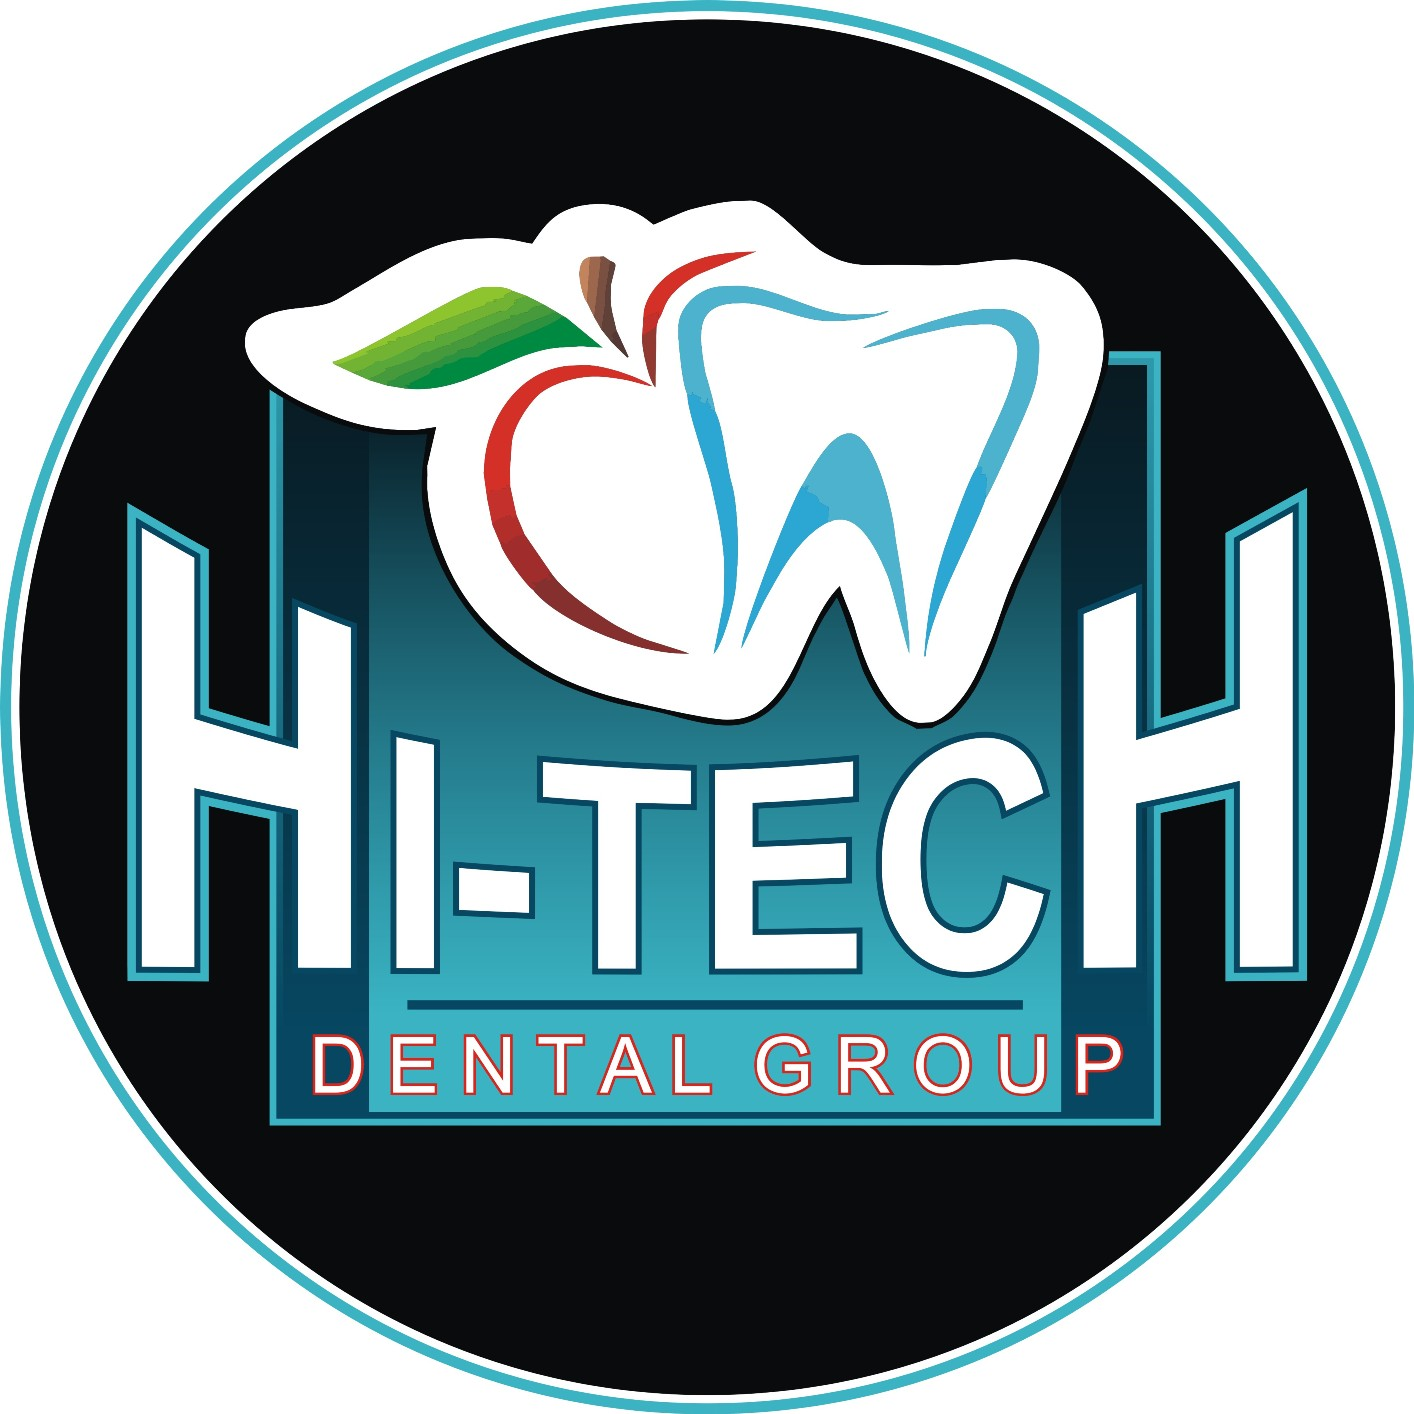 Hi-Tech Dental Group